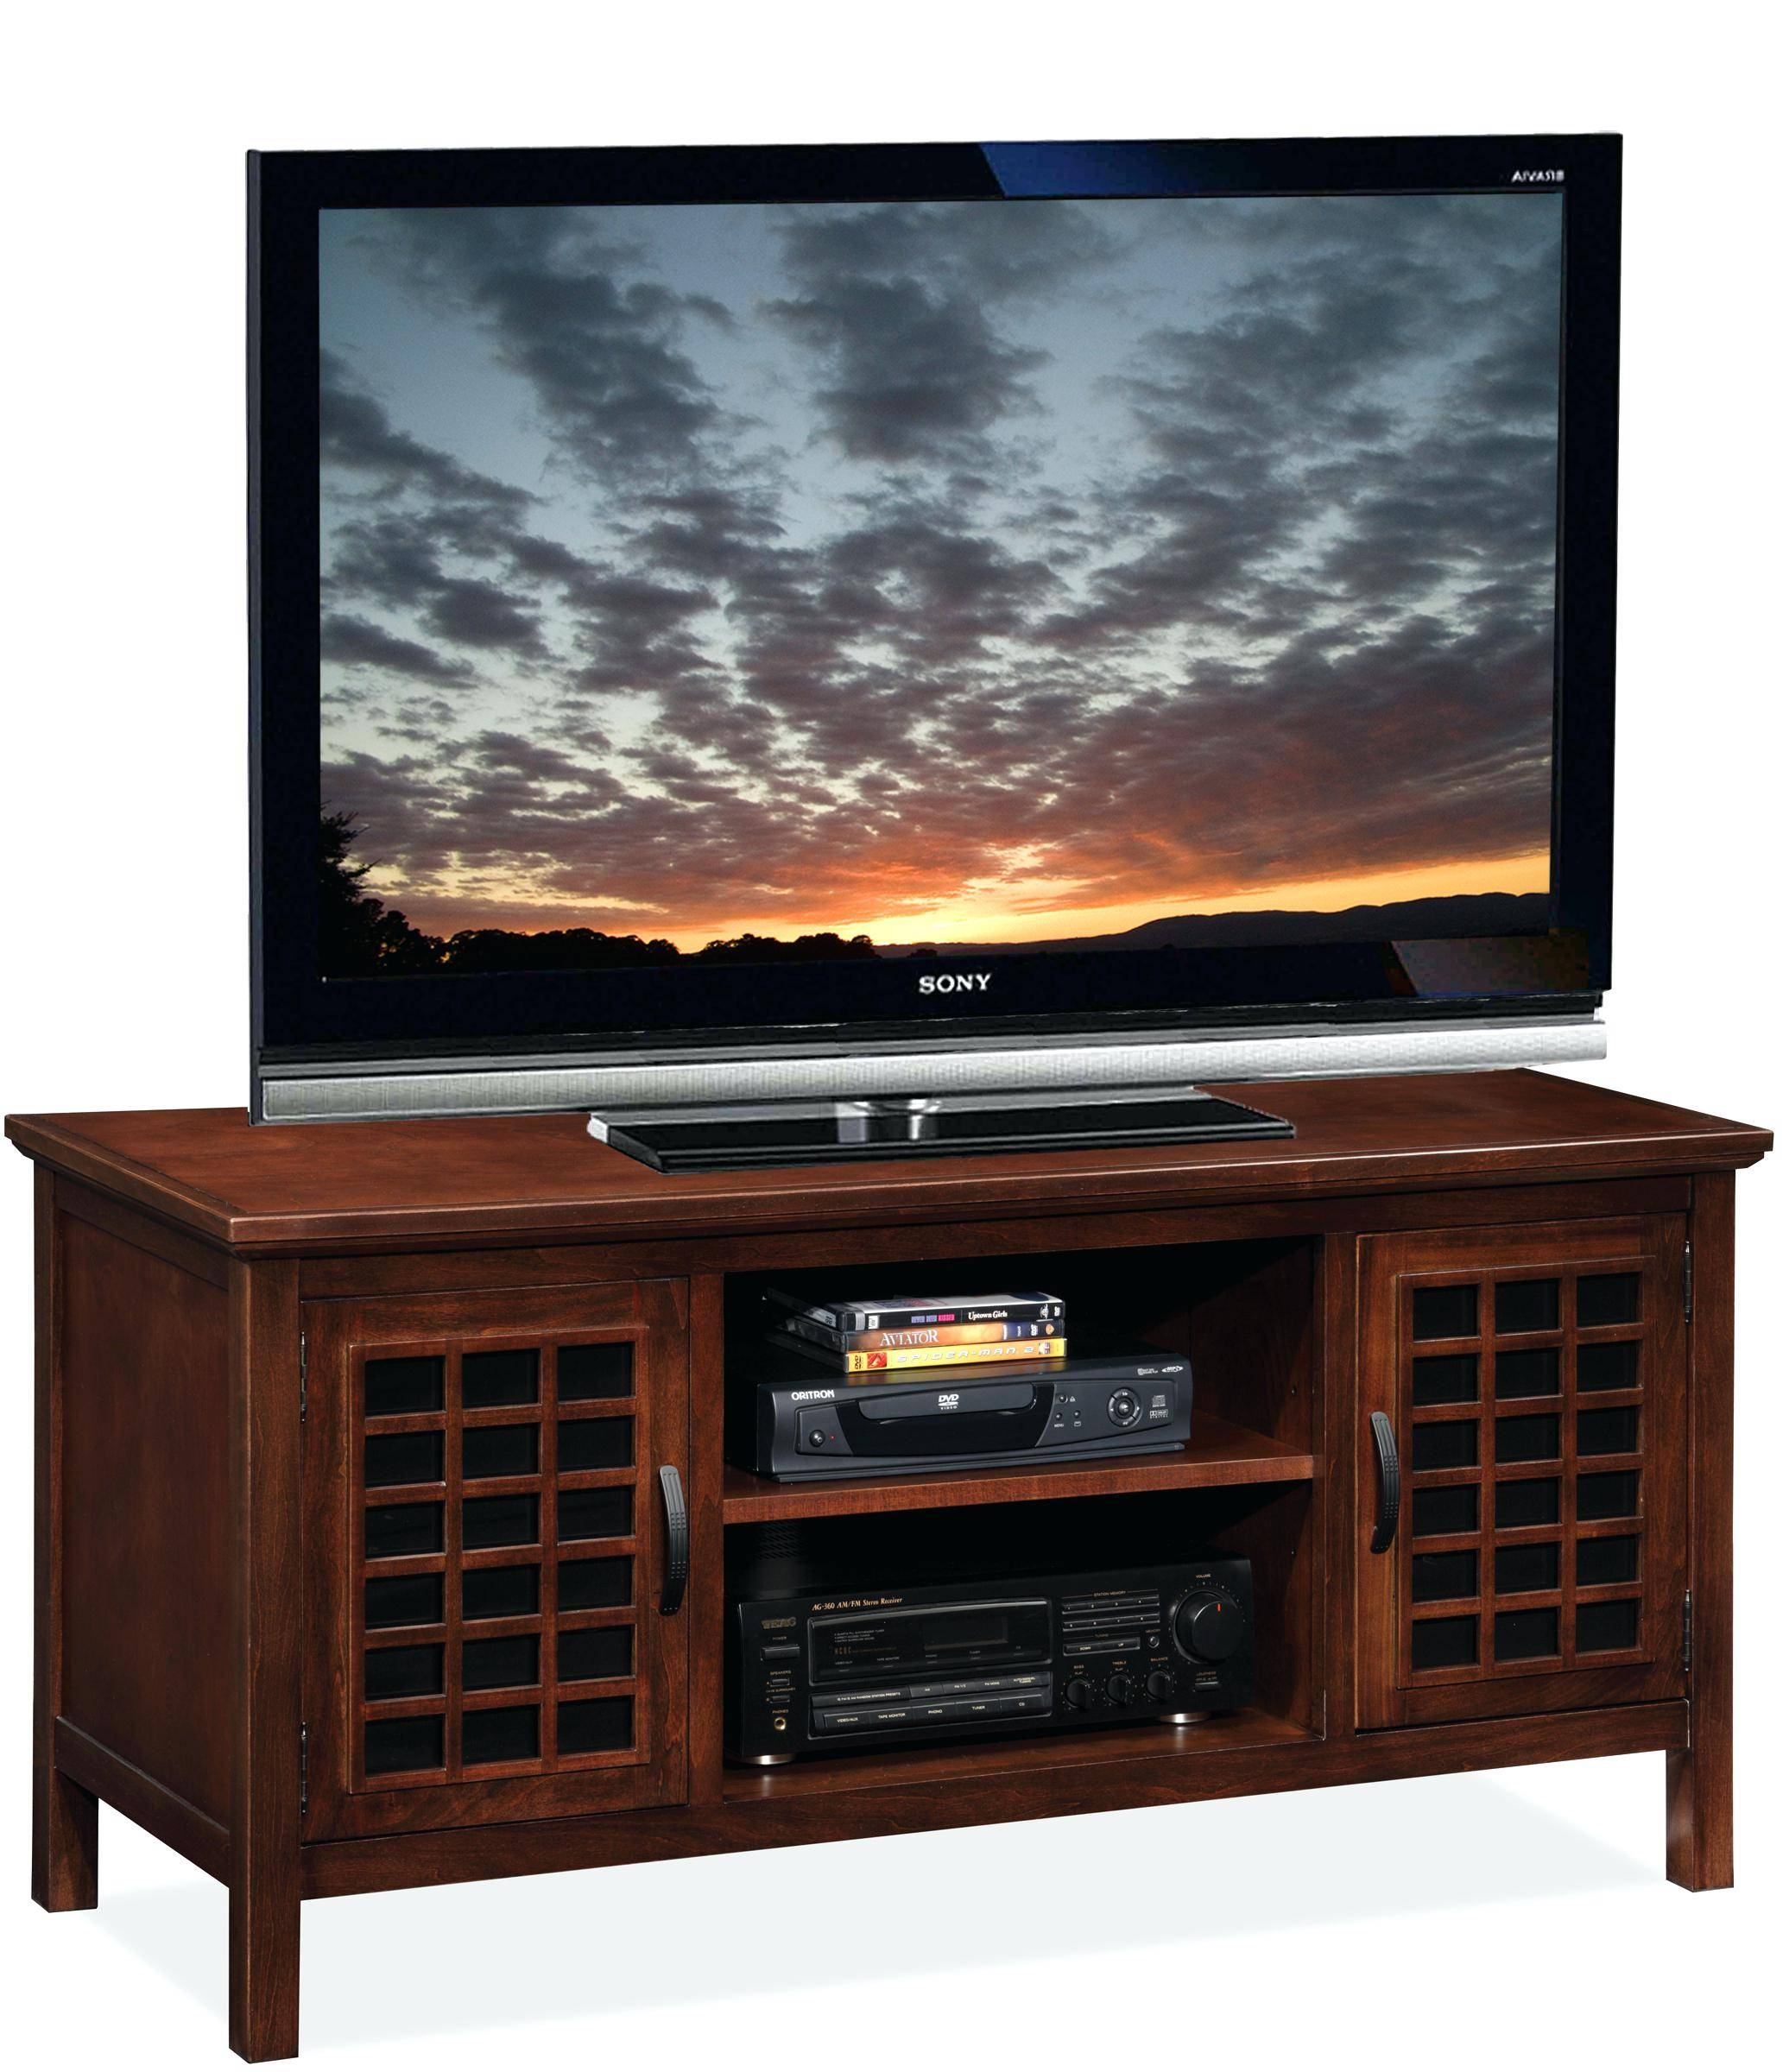 Tv Stand : Sauder Tv Stands Cherry Wood Harper Display Cabinet intended for Cherry Wood Tv Cabinets (Image 13 of 15)